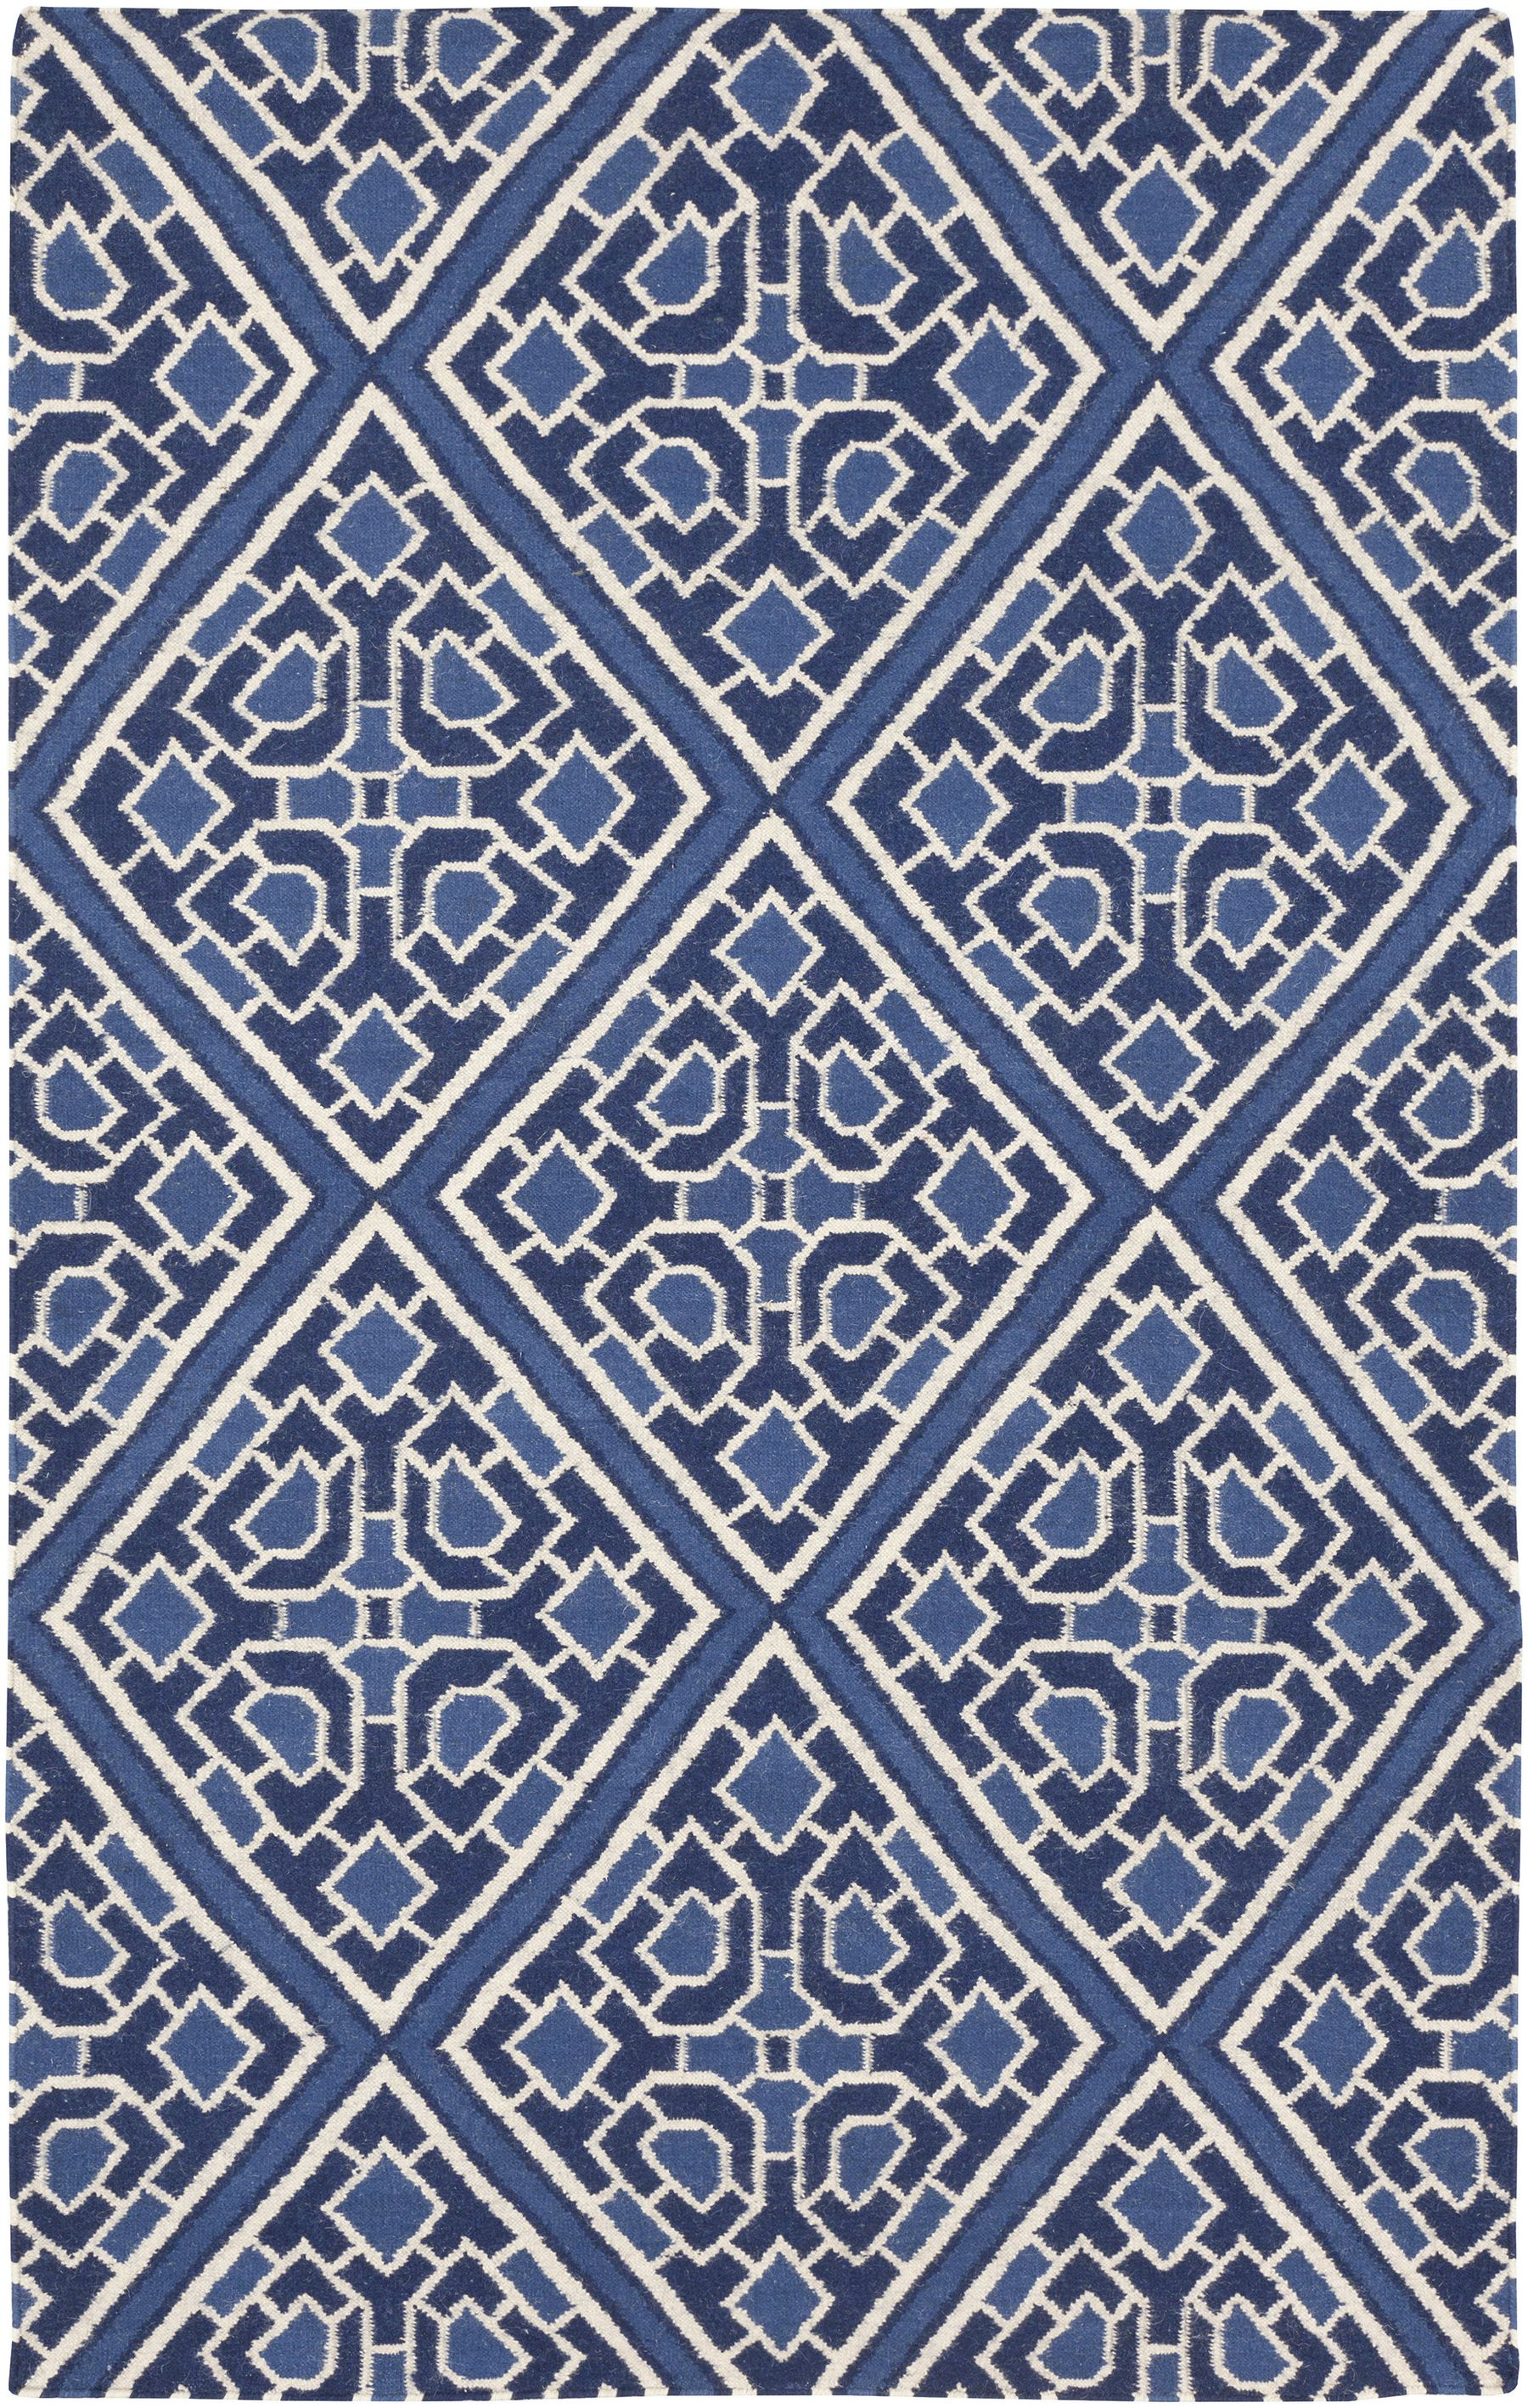 Amd 1005 Navy Blue Diamond Pattern Lacefield Surya Rug Area Rug Collections Contemporary Area Rugs Black Area Rugs